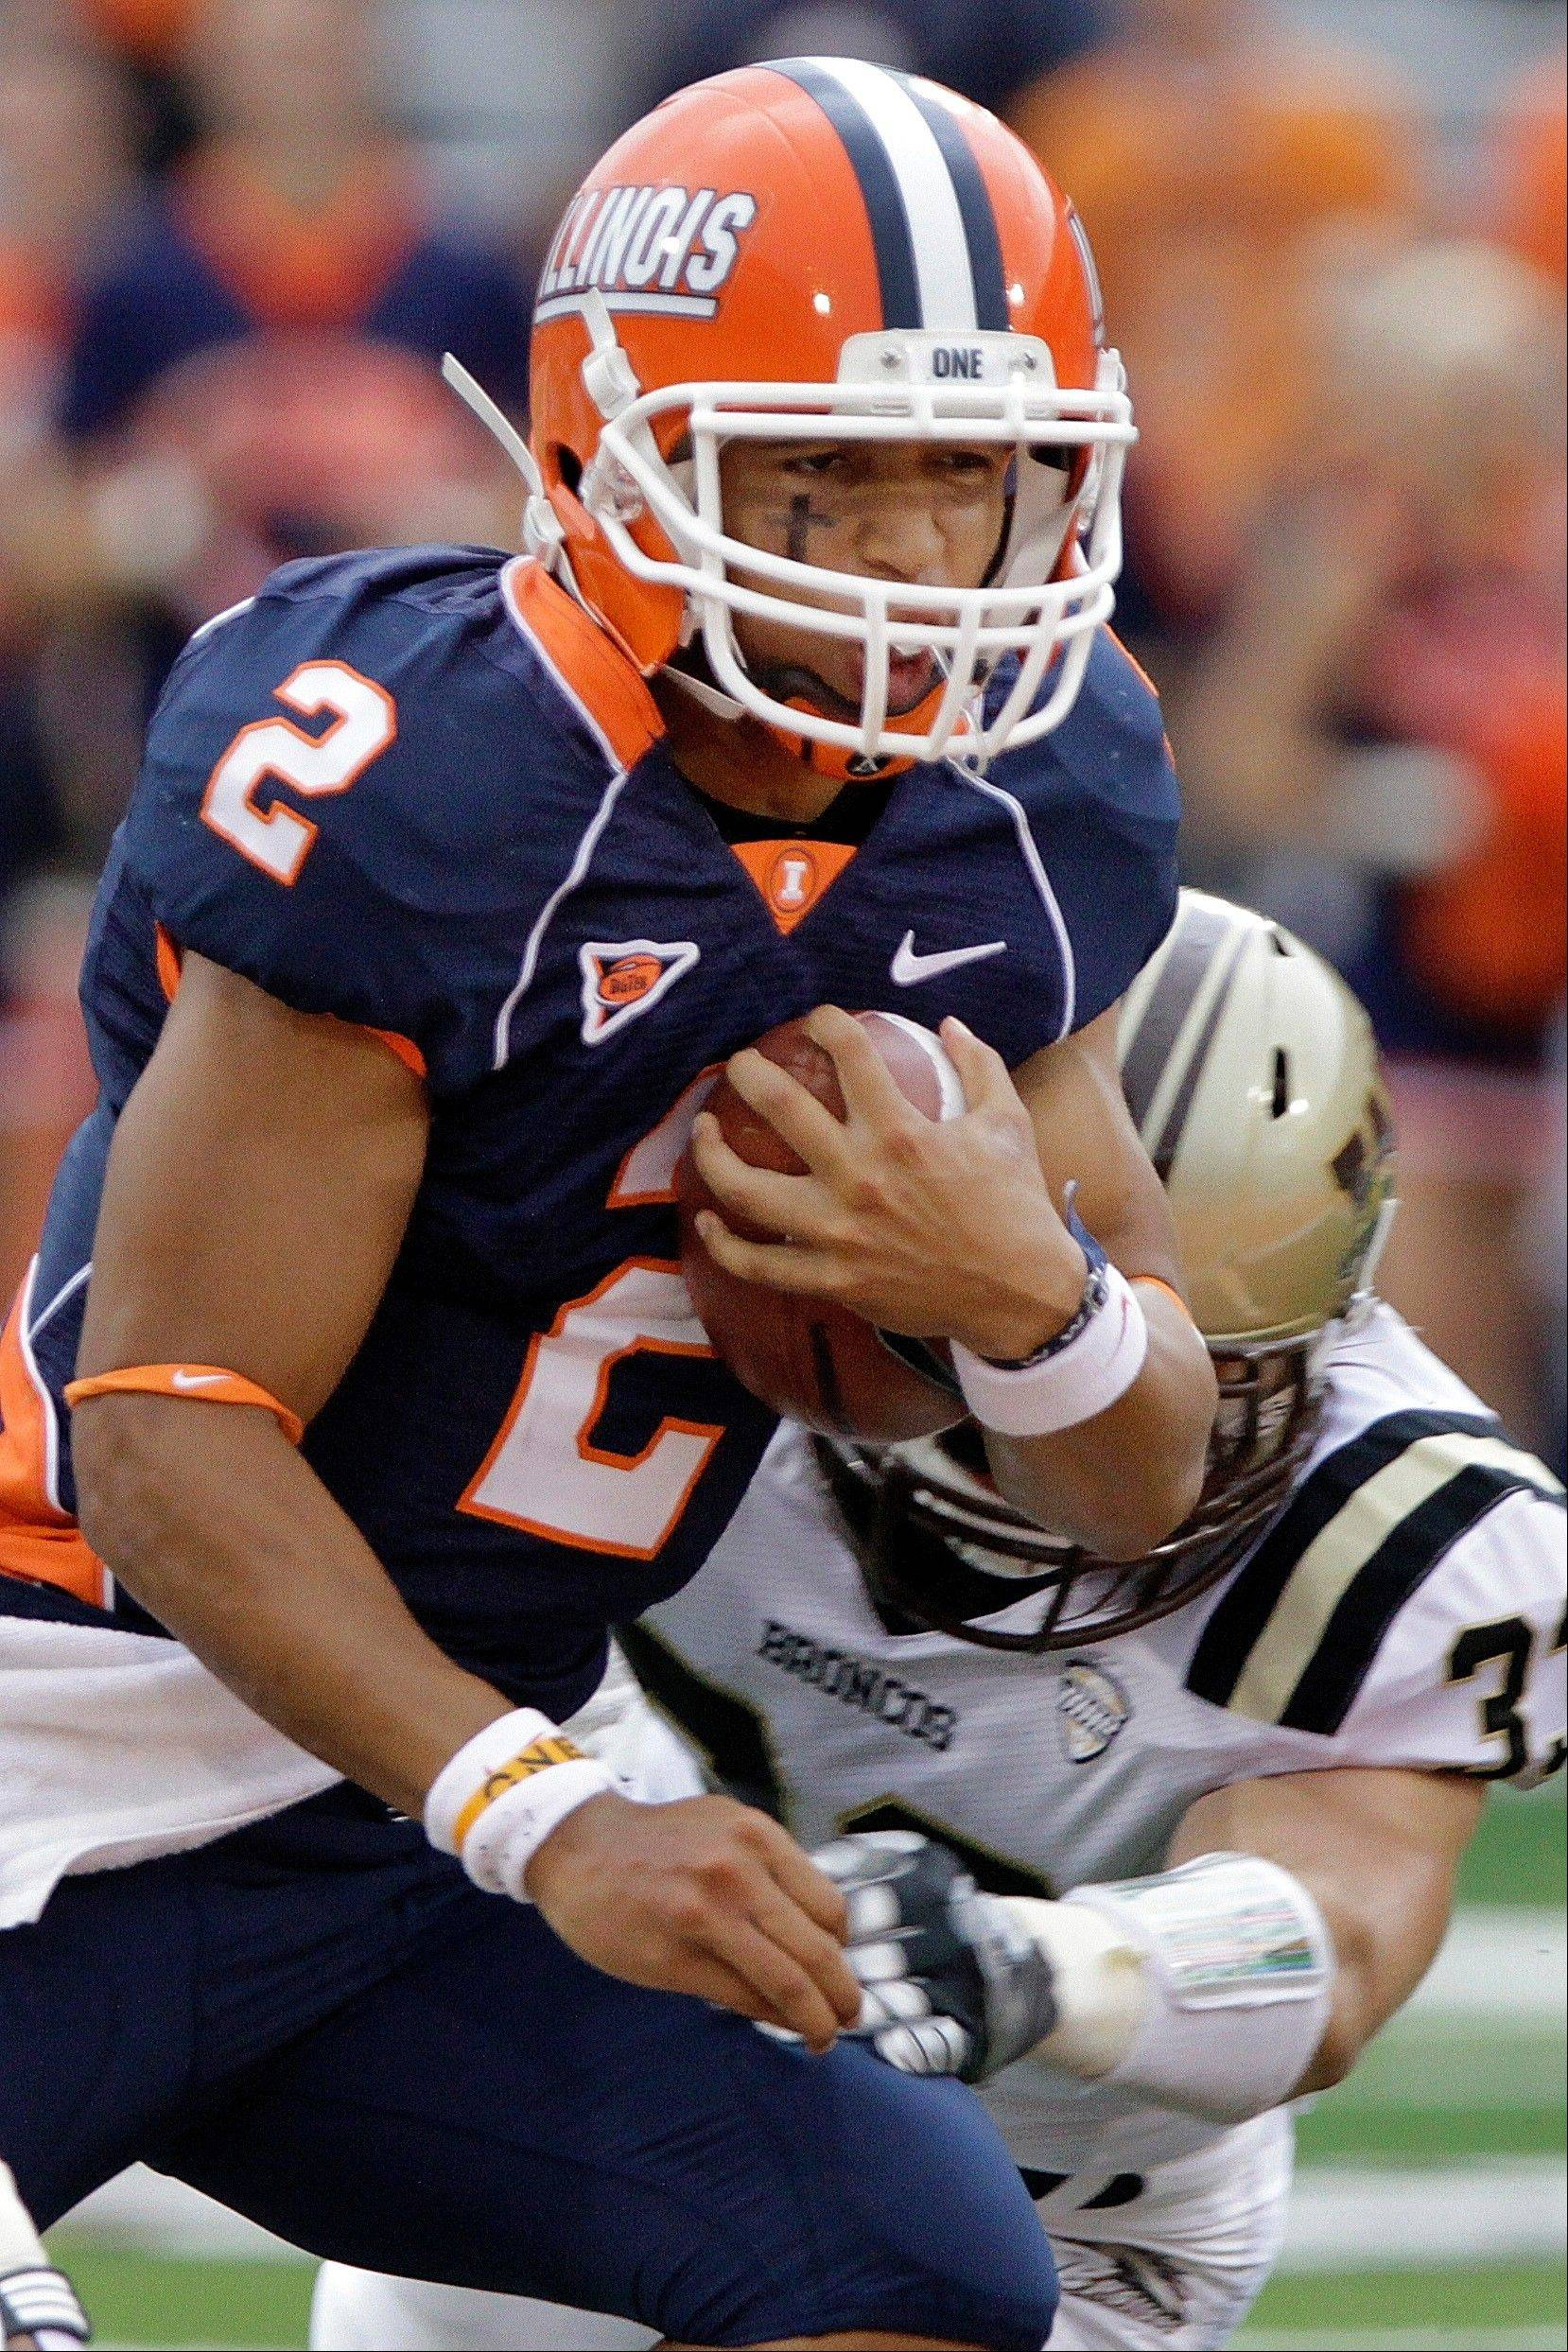 Illinois quarterback Nathan Scheelhaase runs with the ball last Saturday against Western Michigan in Champaign.